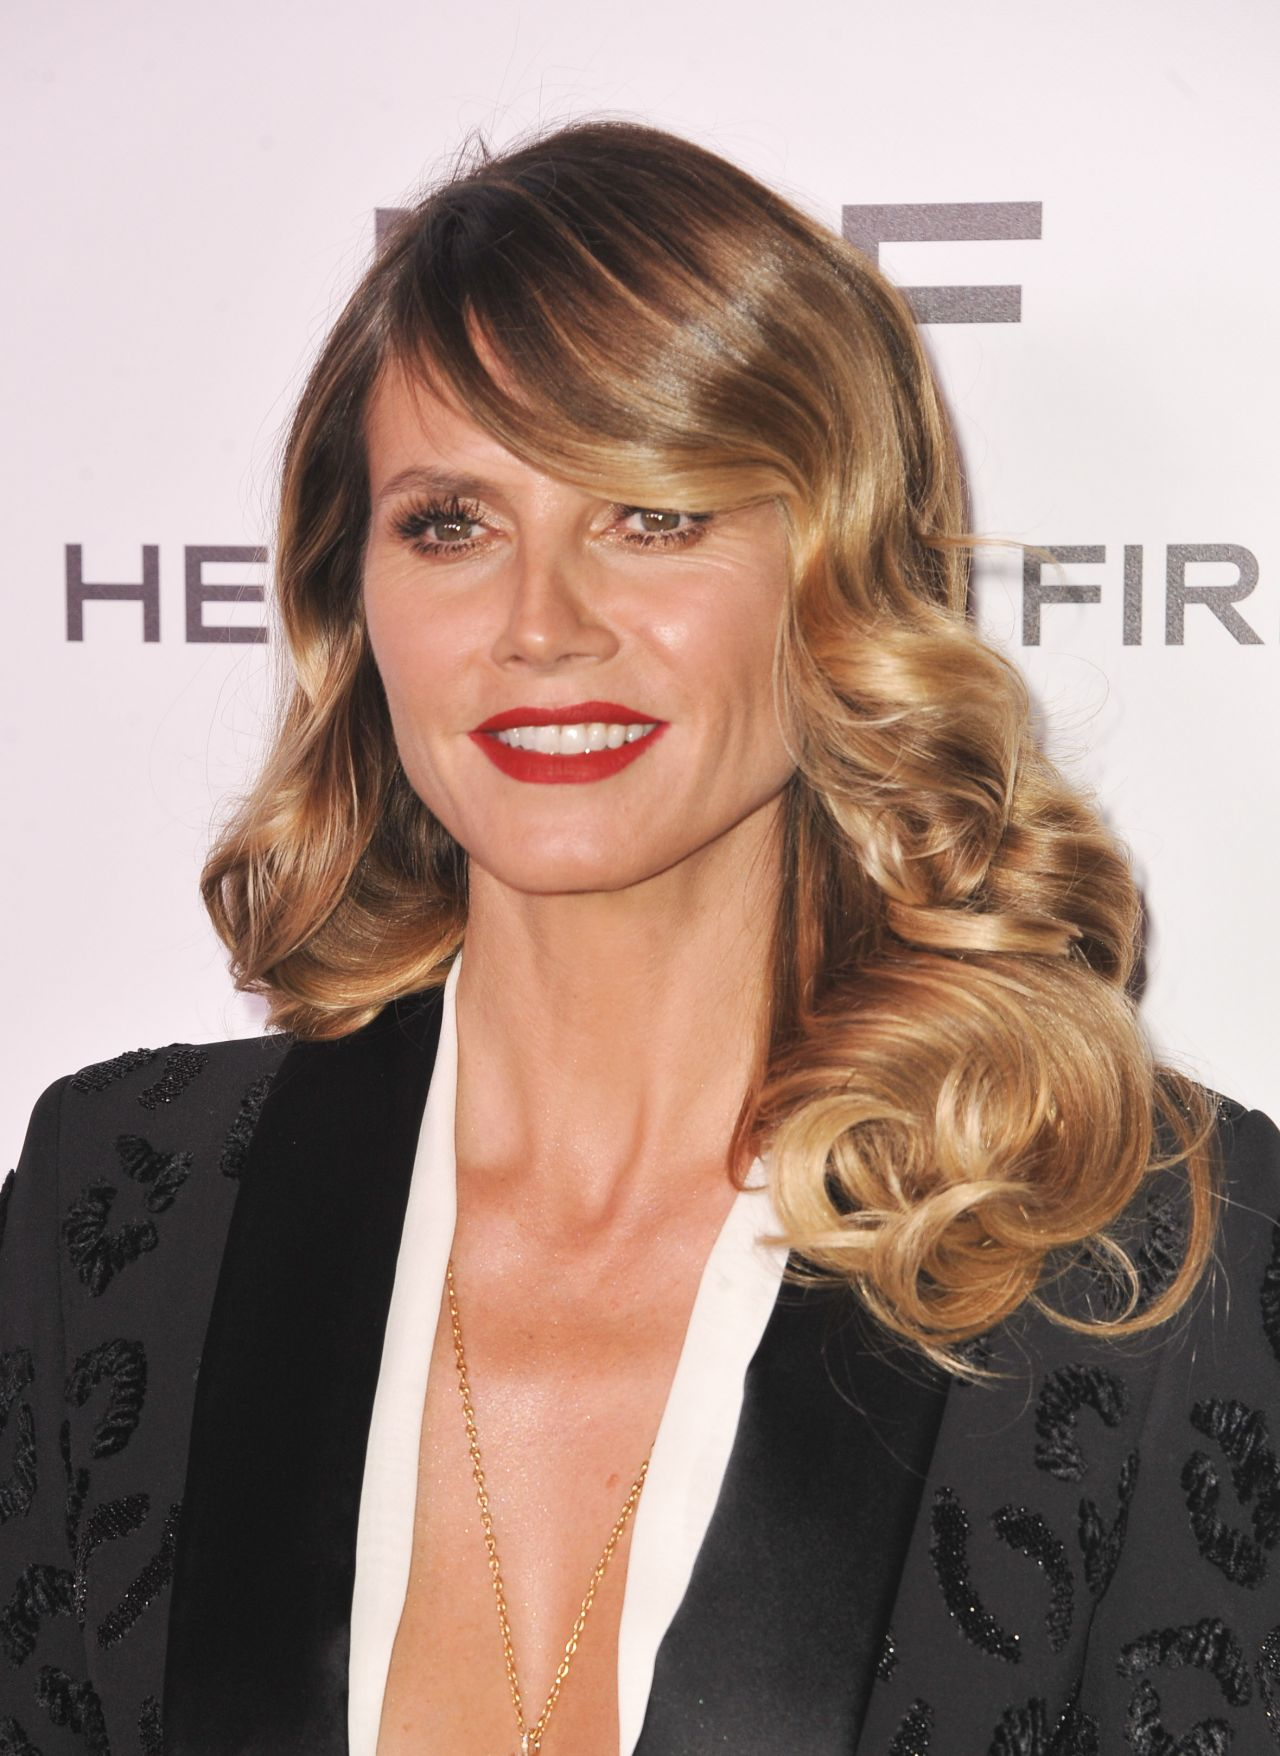 heidi klum harper s bazaar 150 most fashionable woman cocktail party in la 1 27 2017. Black Bedroom Furniture Sets. Home Design Ideas